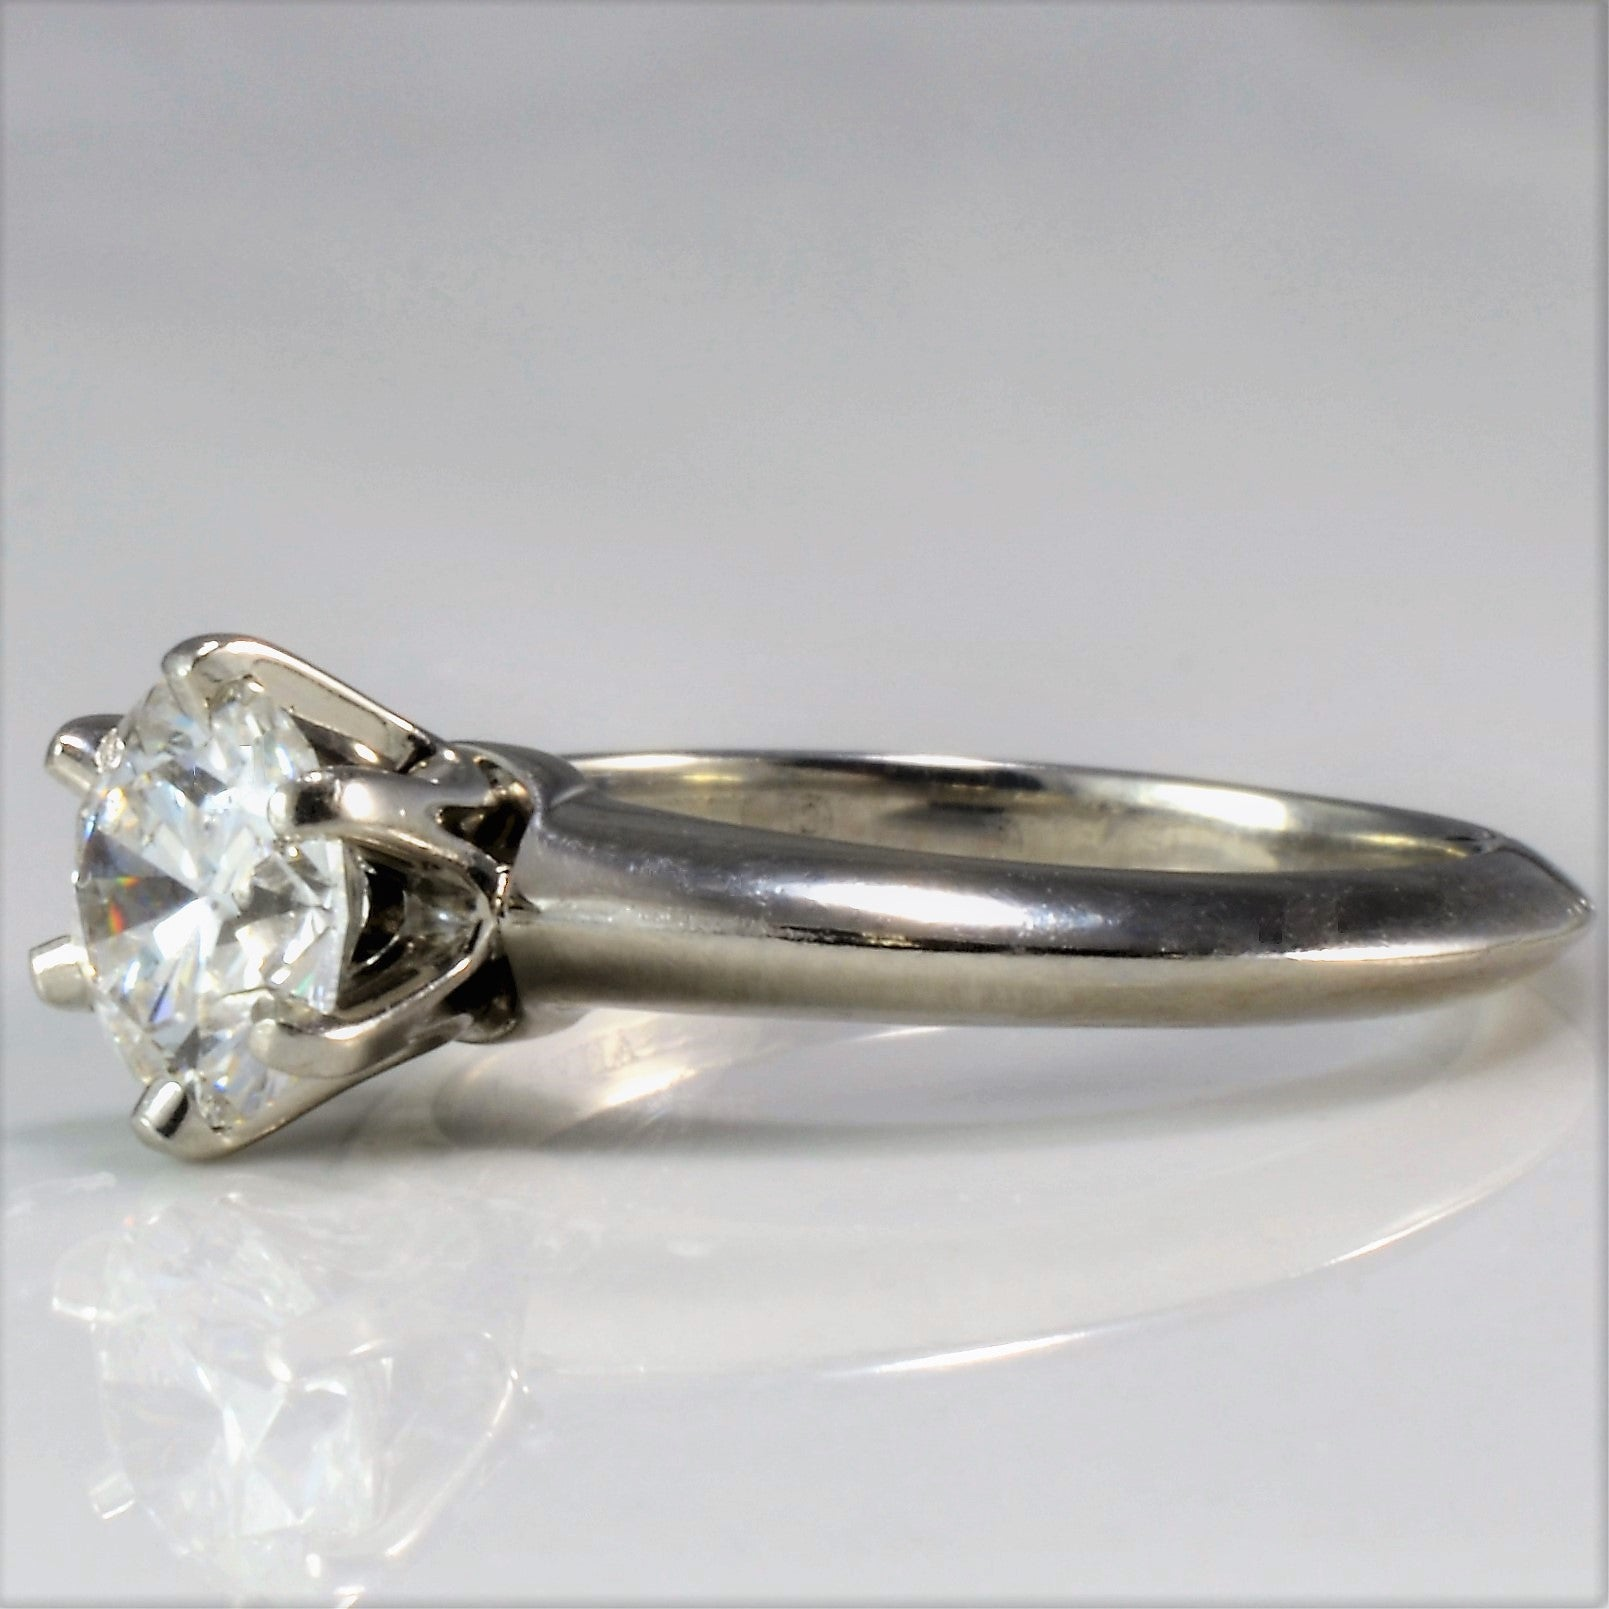 cf5a756e5 Classic Tiffany & Co. Six Prong Solitaire Engagement Ring | 0.80 ct, S – 100  Ways